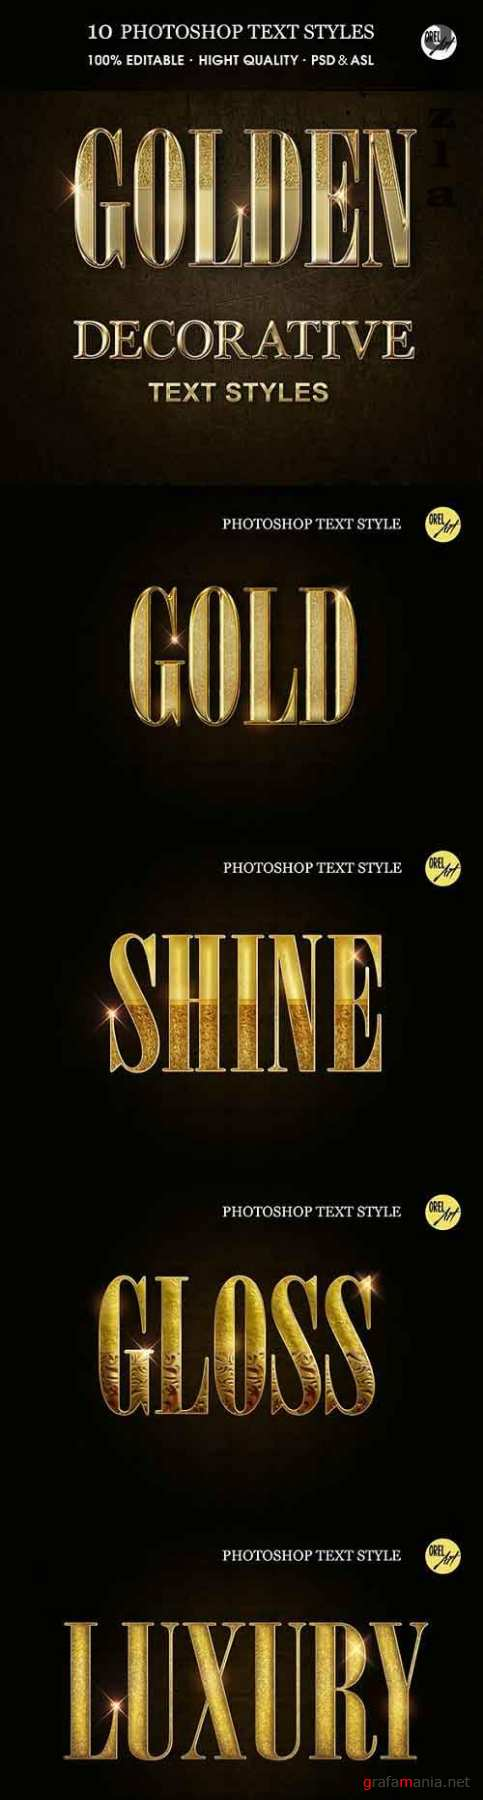 GraphicRiver - Golden Decorative Text Styles 30375826